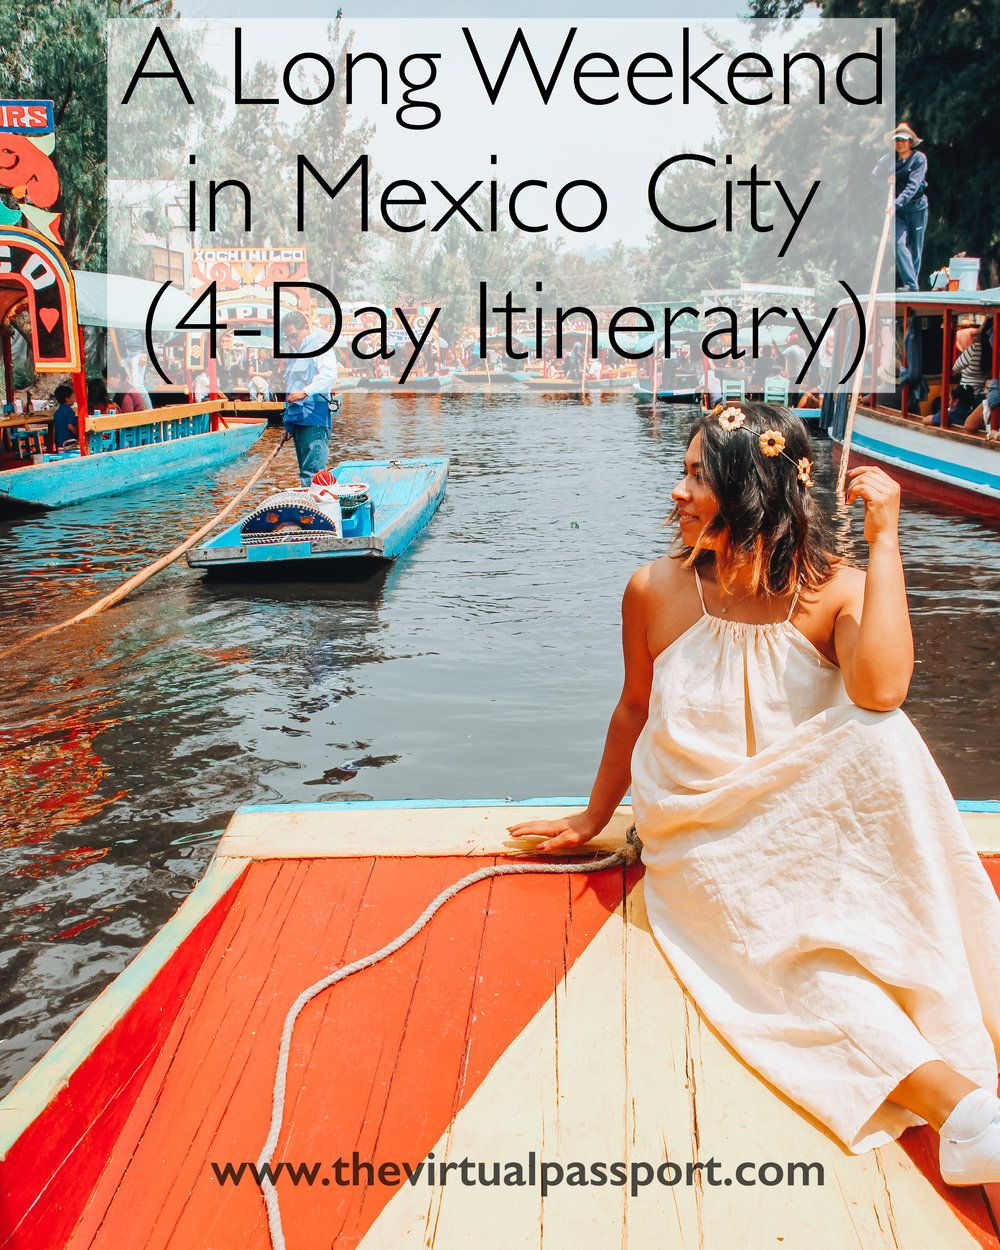 A Long Weekend in Mexico City [4 Day Itinerary]